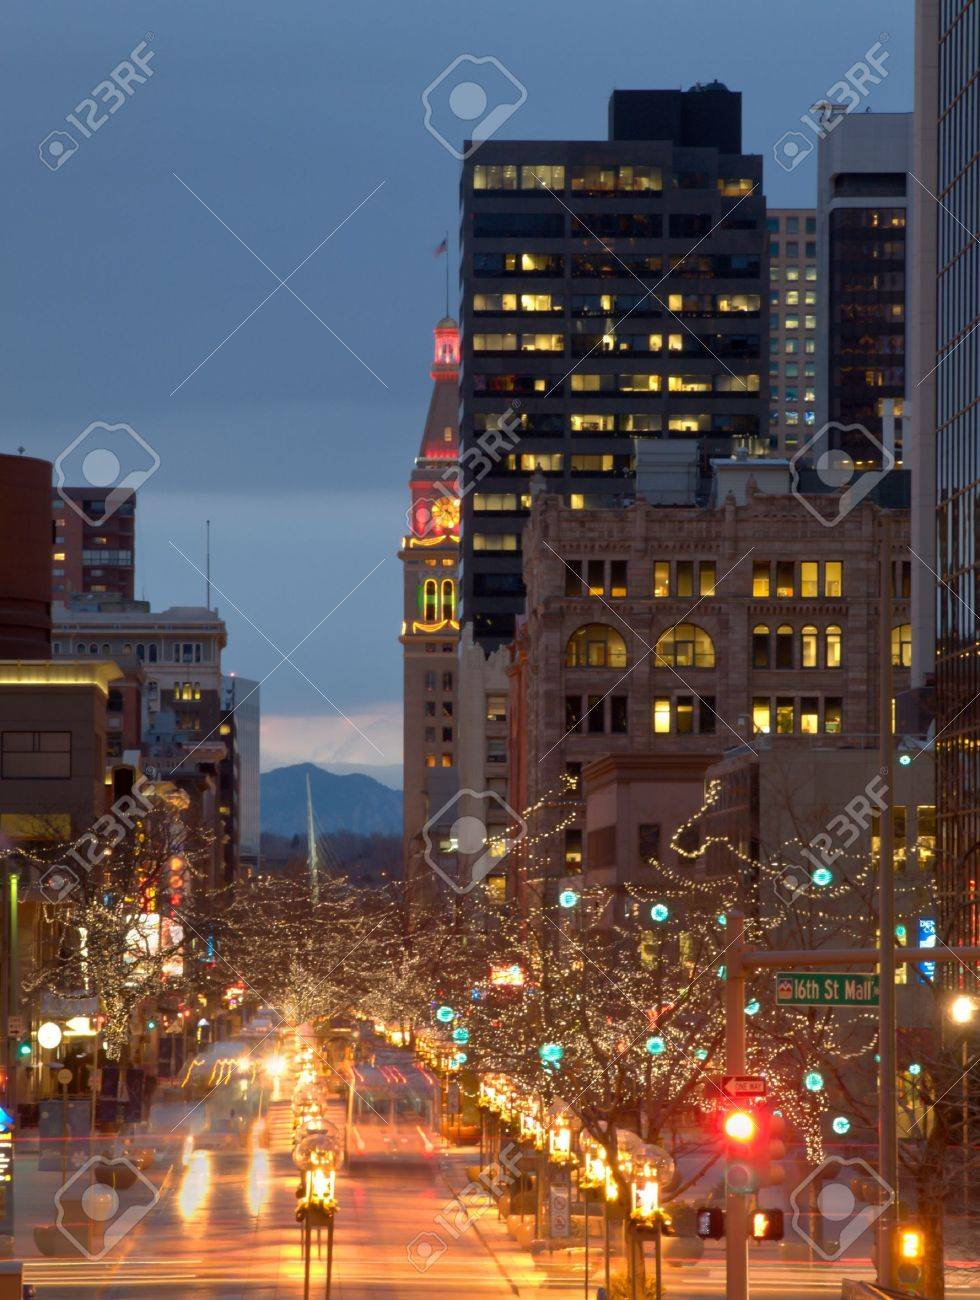 Downtown Denver at Christmas. 16th Street Mall decorated with holiday lights. Stock Photo - 9914471